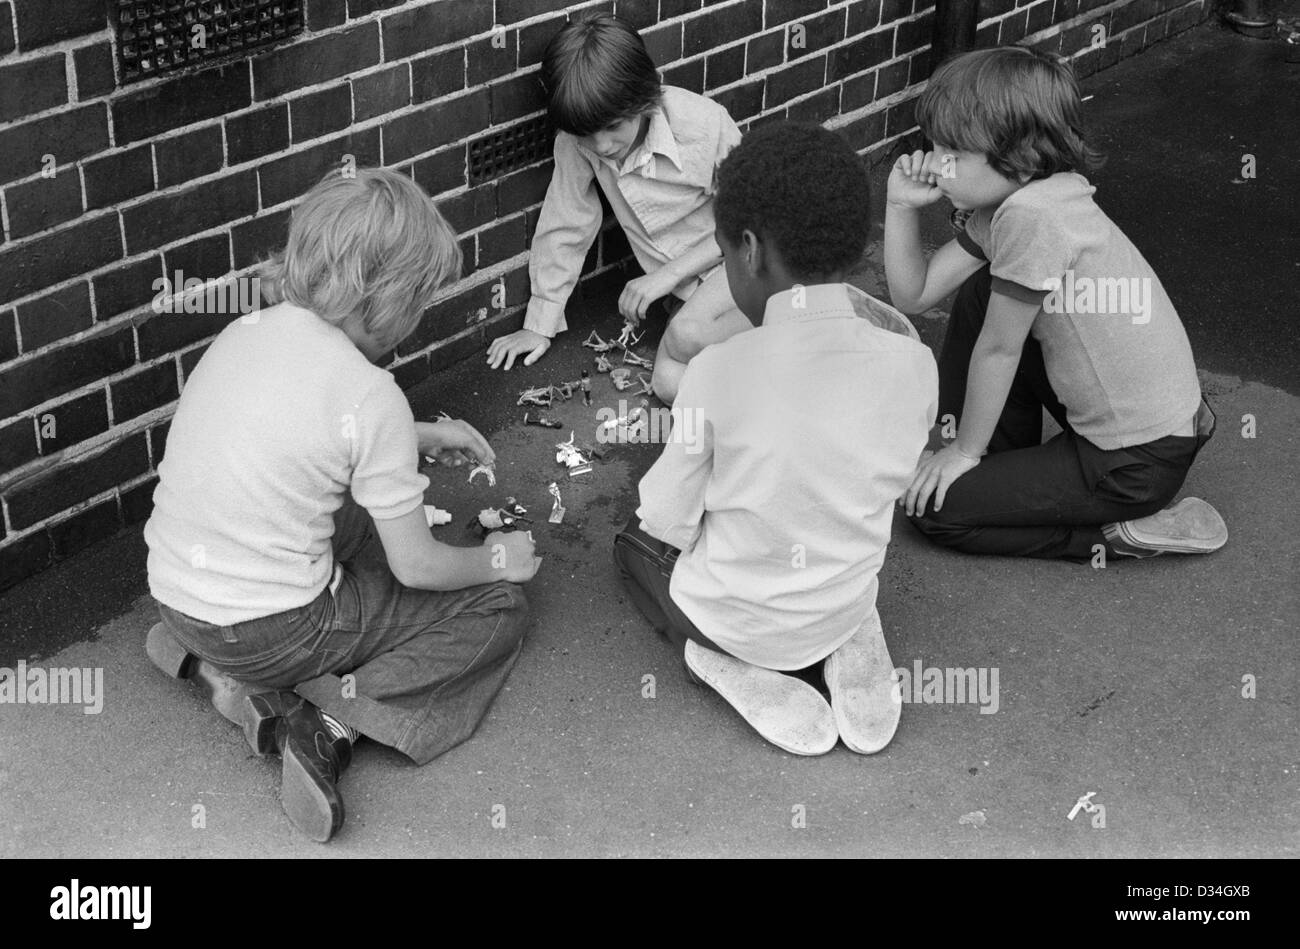 Playground games. South London junior school 1970s England . UK Boys playing with toy soldiers. HOMER SYKES - Stock Image